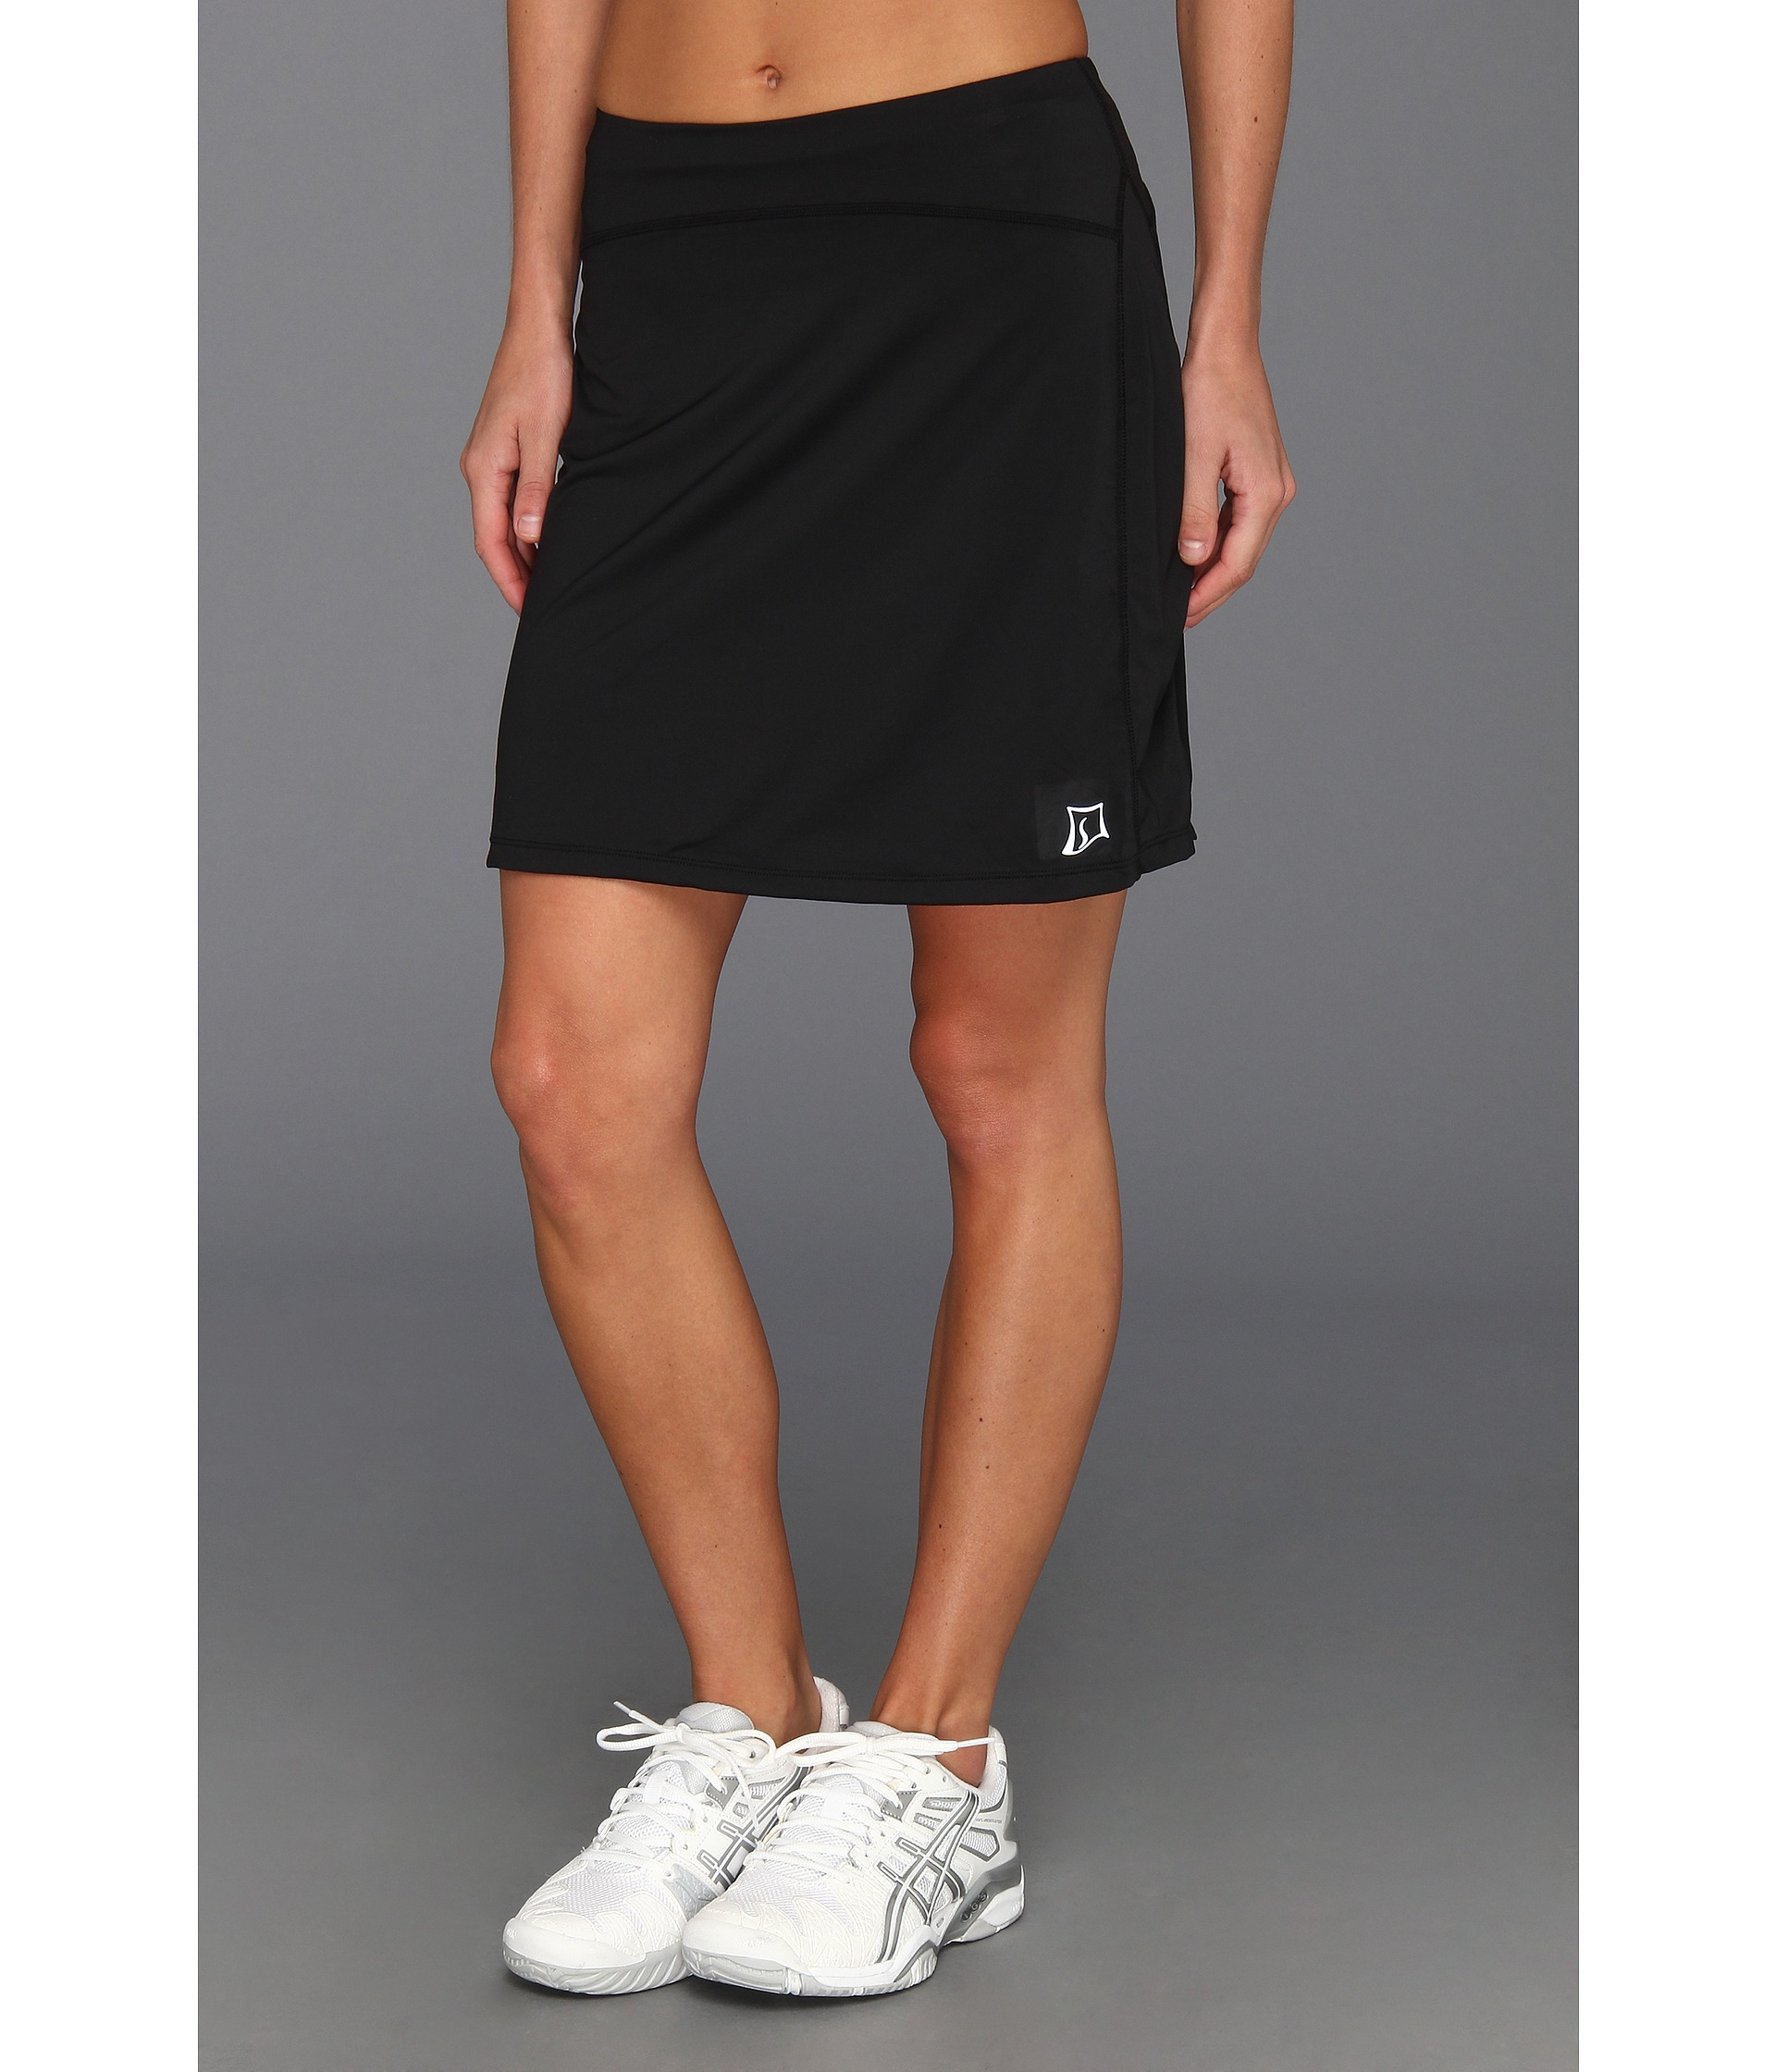 "The first ""running skirt"" was designed 12 years ago and features a built in brief and 2 roomy velcro-closure side pockets. We've since expanded our line to include 10 different fitness skirt styles including running skirts, athletic skirts, golf, tennis, triathlon, SUP & capri skirts, maternity running skirts, spirit below-knee length."